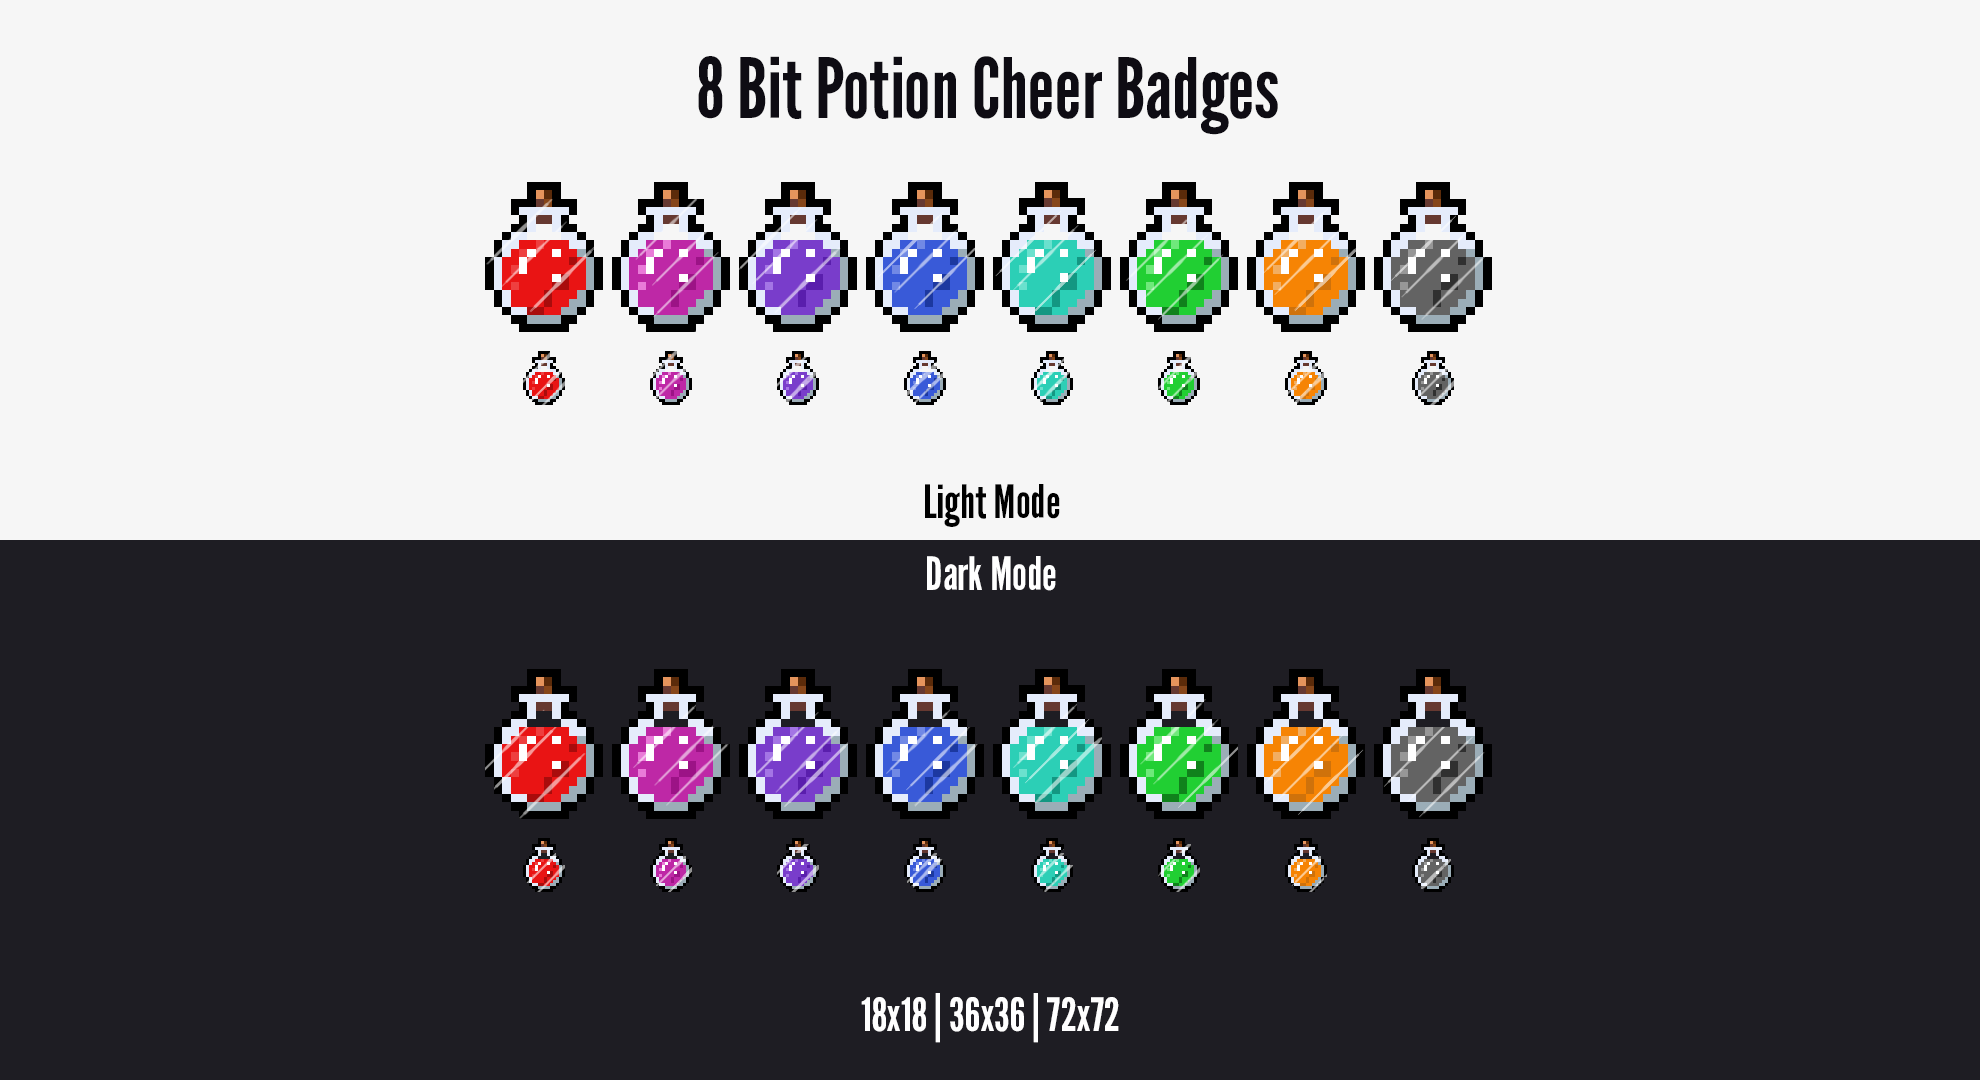 8 Bit Potion Cheer Badges for Twitch! Up your stream quality with these pixel-based cheer badges by LD Designs. Can be used as Subscriber Badges!  #twitchaffiliate #twitchsubbadges #twitchemotes #twitchpanels #twitchoverlay #pixelart #8bit #potions #magic #emotes #twitchcreative #digitalart #pixelgram #pixel_ig #pixel_dailies #pixeleffect #minecraft